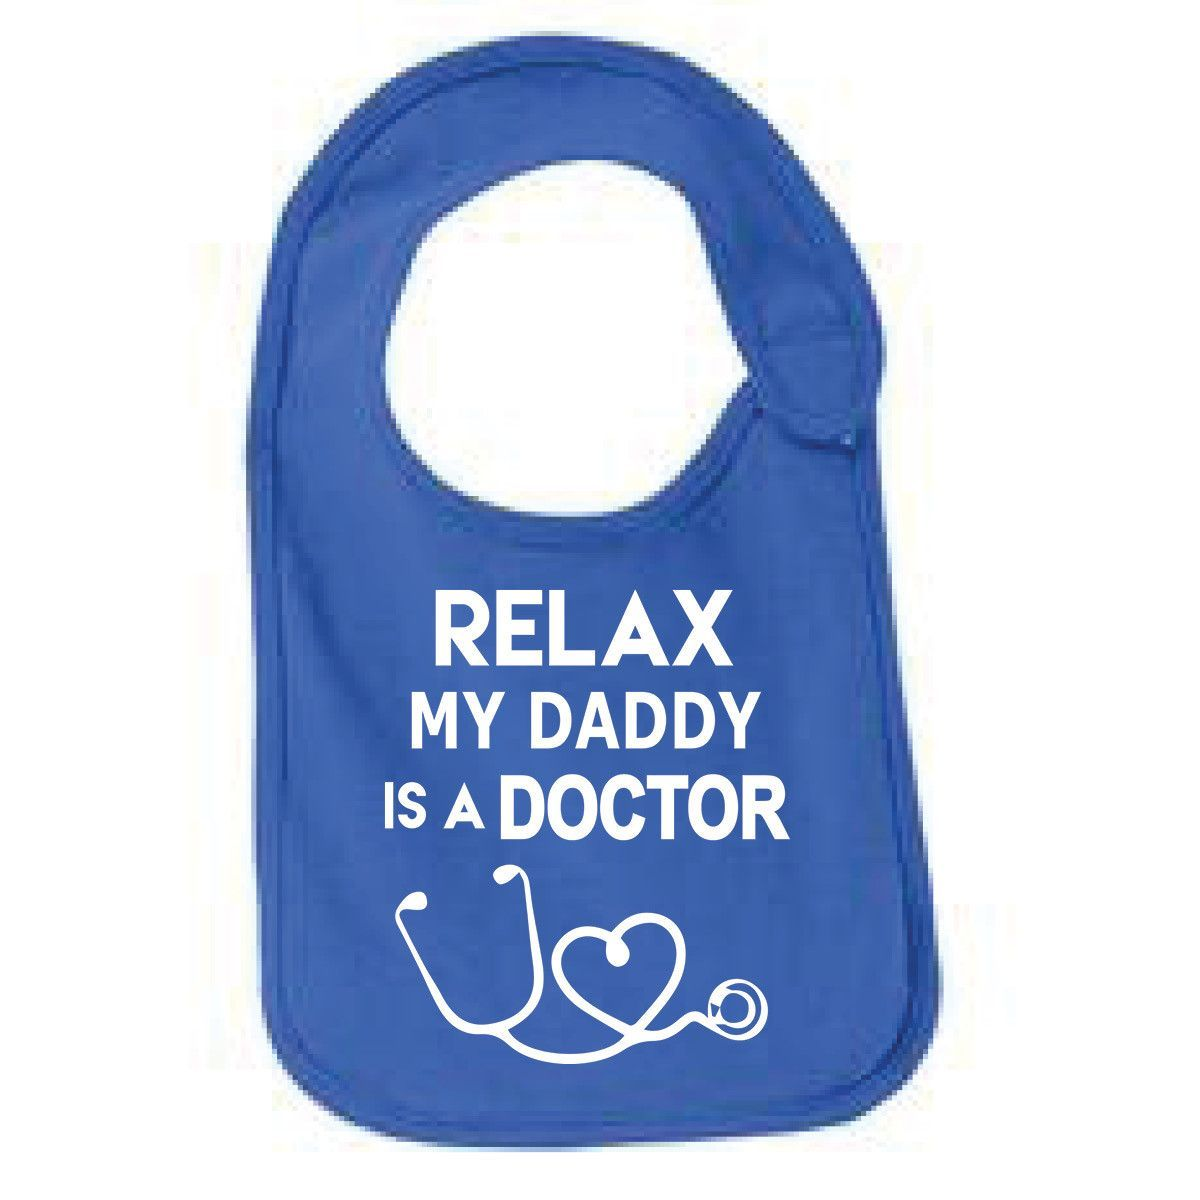 Relax My Daddy Is a Doctor Bib